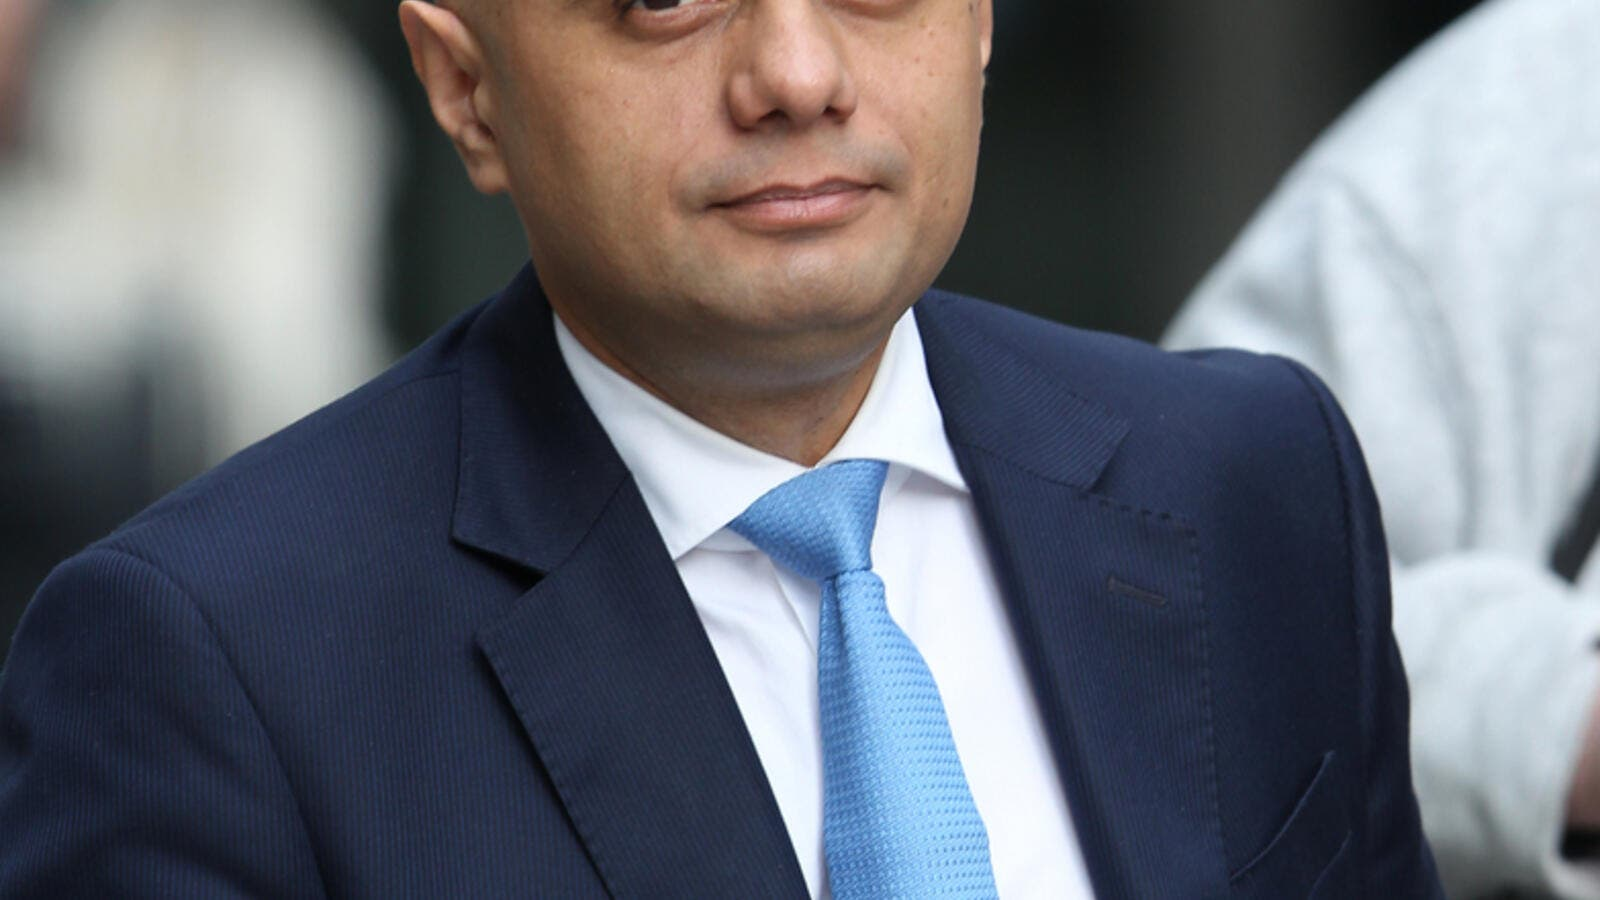 Home Secretary Sajid Javid faces a major backlash today after making it clear Britain will not block the death penalty for the ISIS 'Beatles'. (Shutterstock/ File)